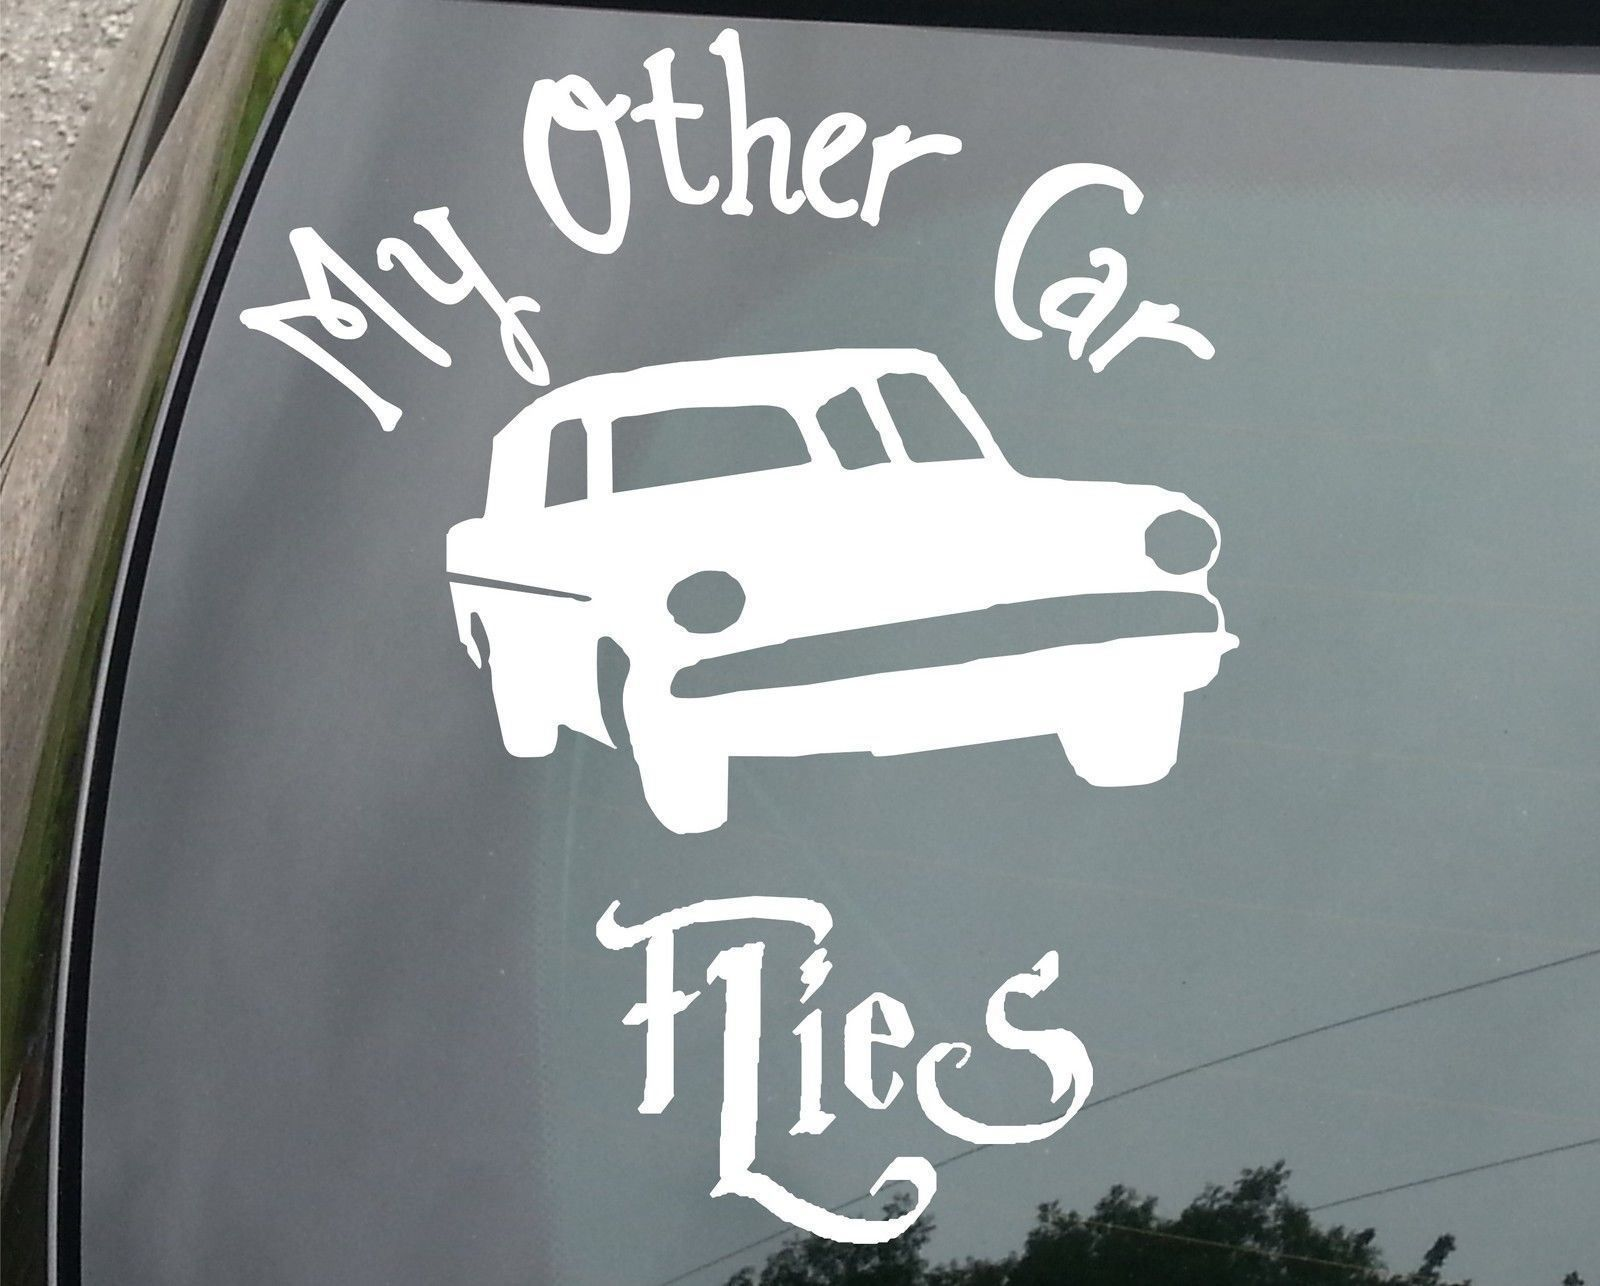 My other car flies harry potter funny car decal sticker chamber of secrets